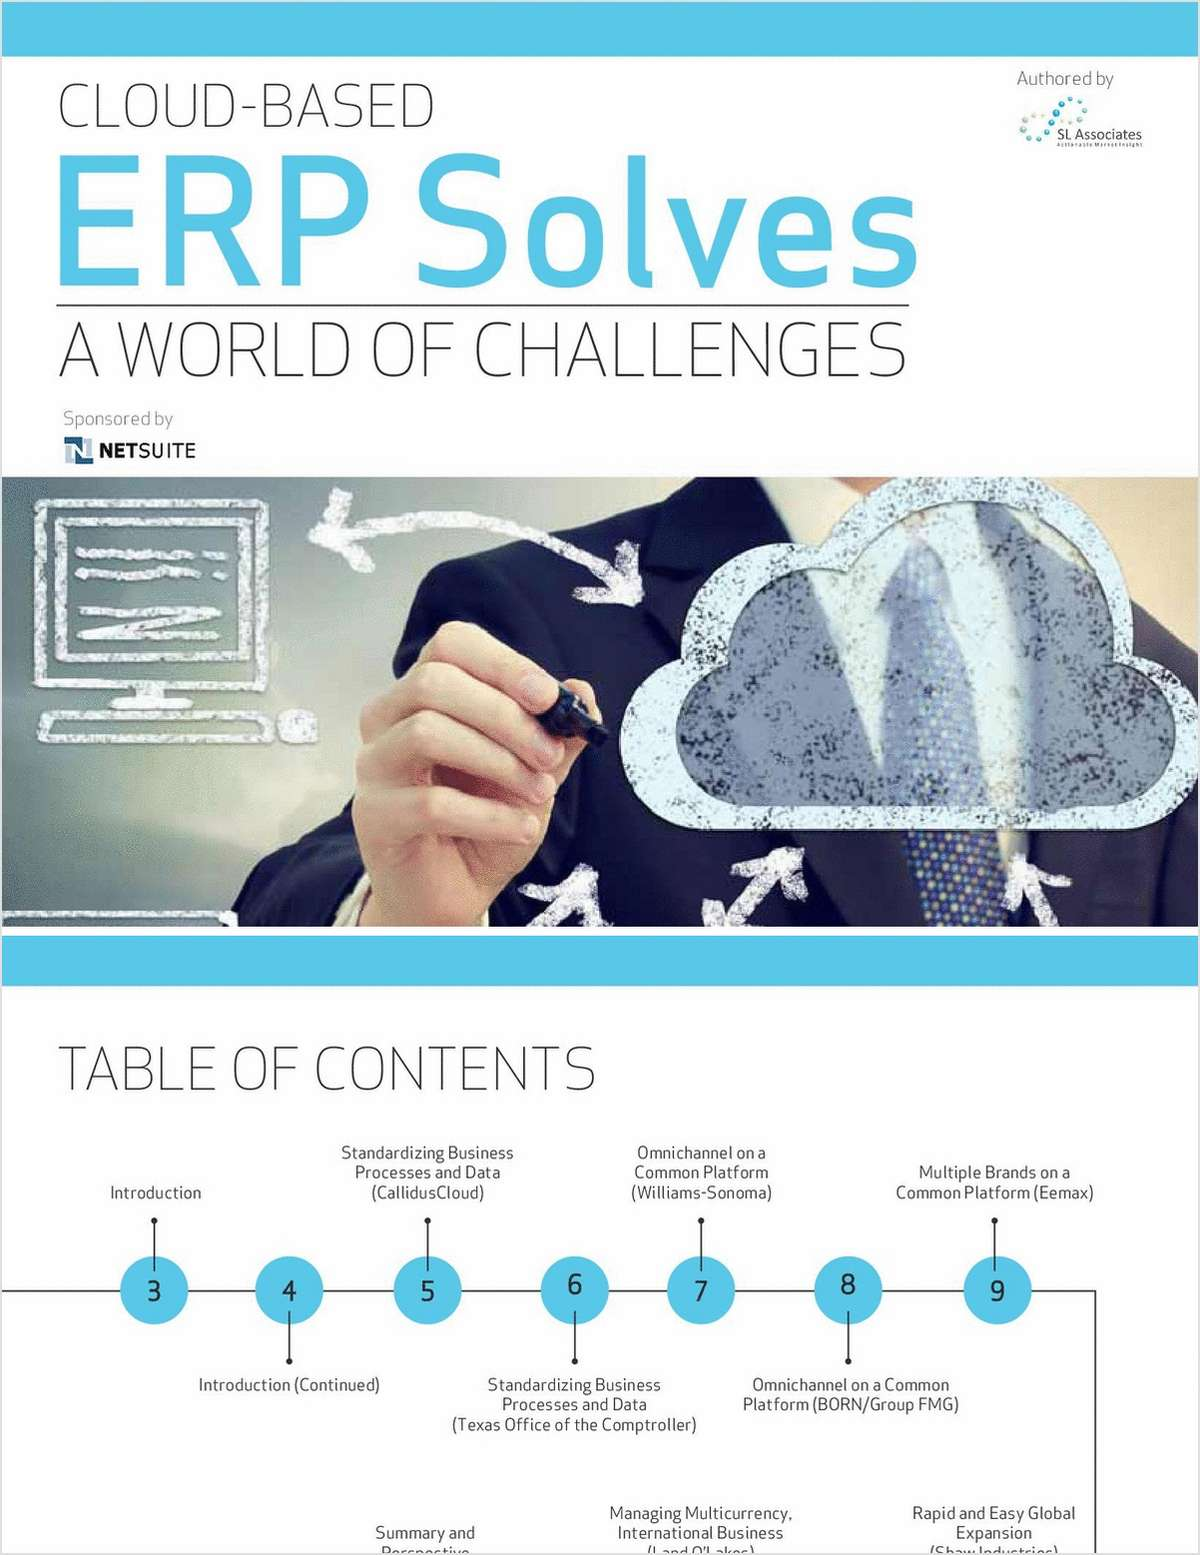 Boost Your IT Efficiency and Effectiveness with NetSuite OneWorld Cloud Solutions